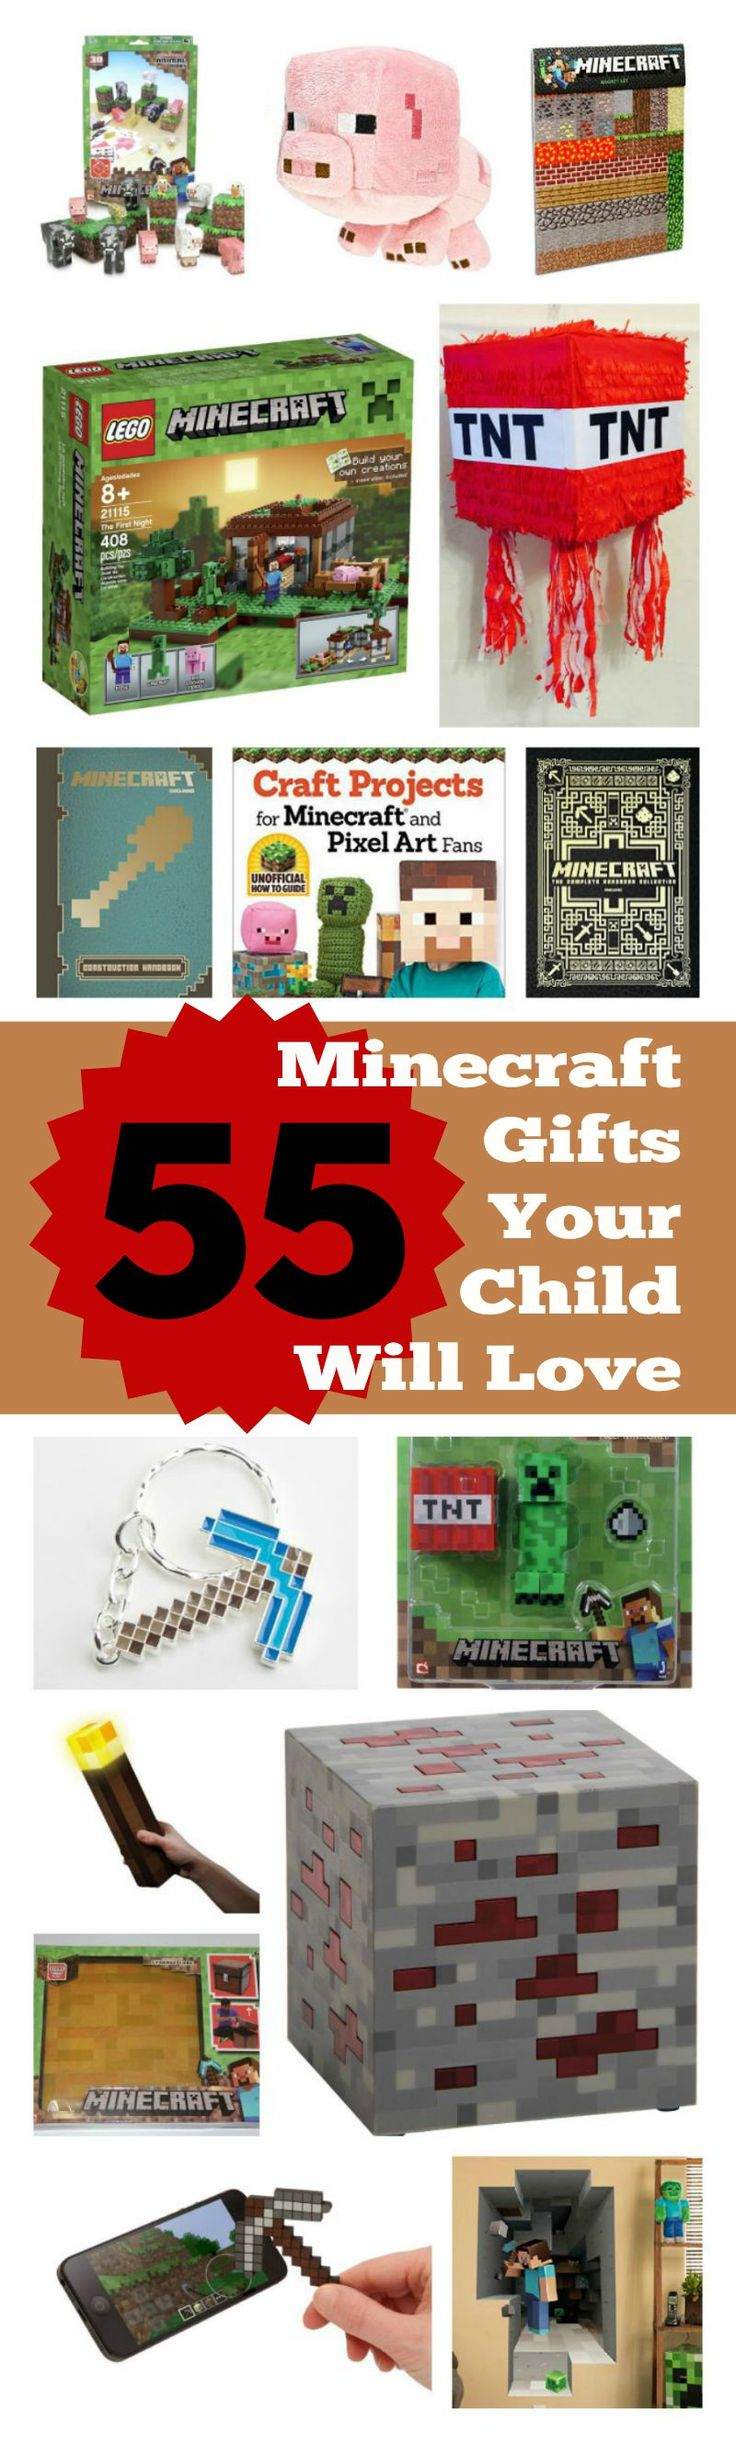 55 Minecraft Gifts in All Categories - Find the perfect gift for any child! An Extraordinary Minecraft Gift Guide!